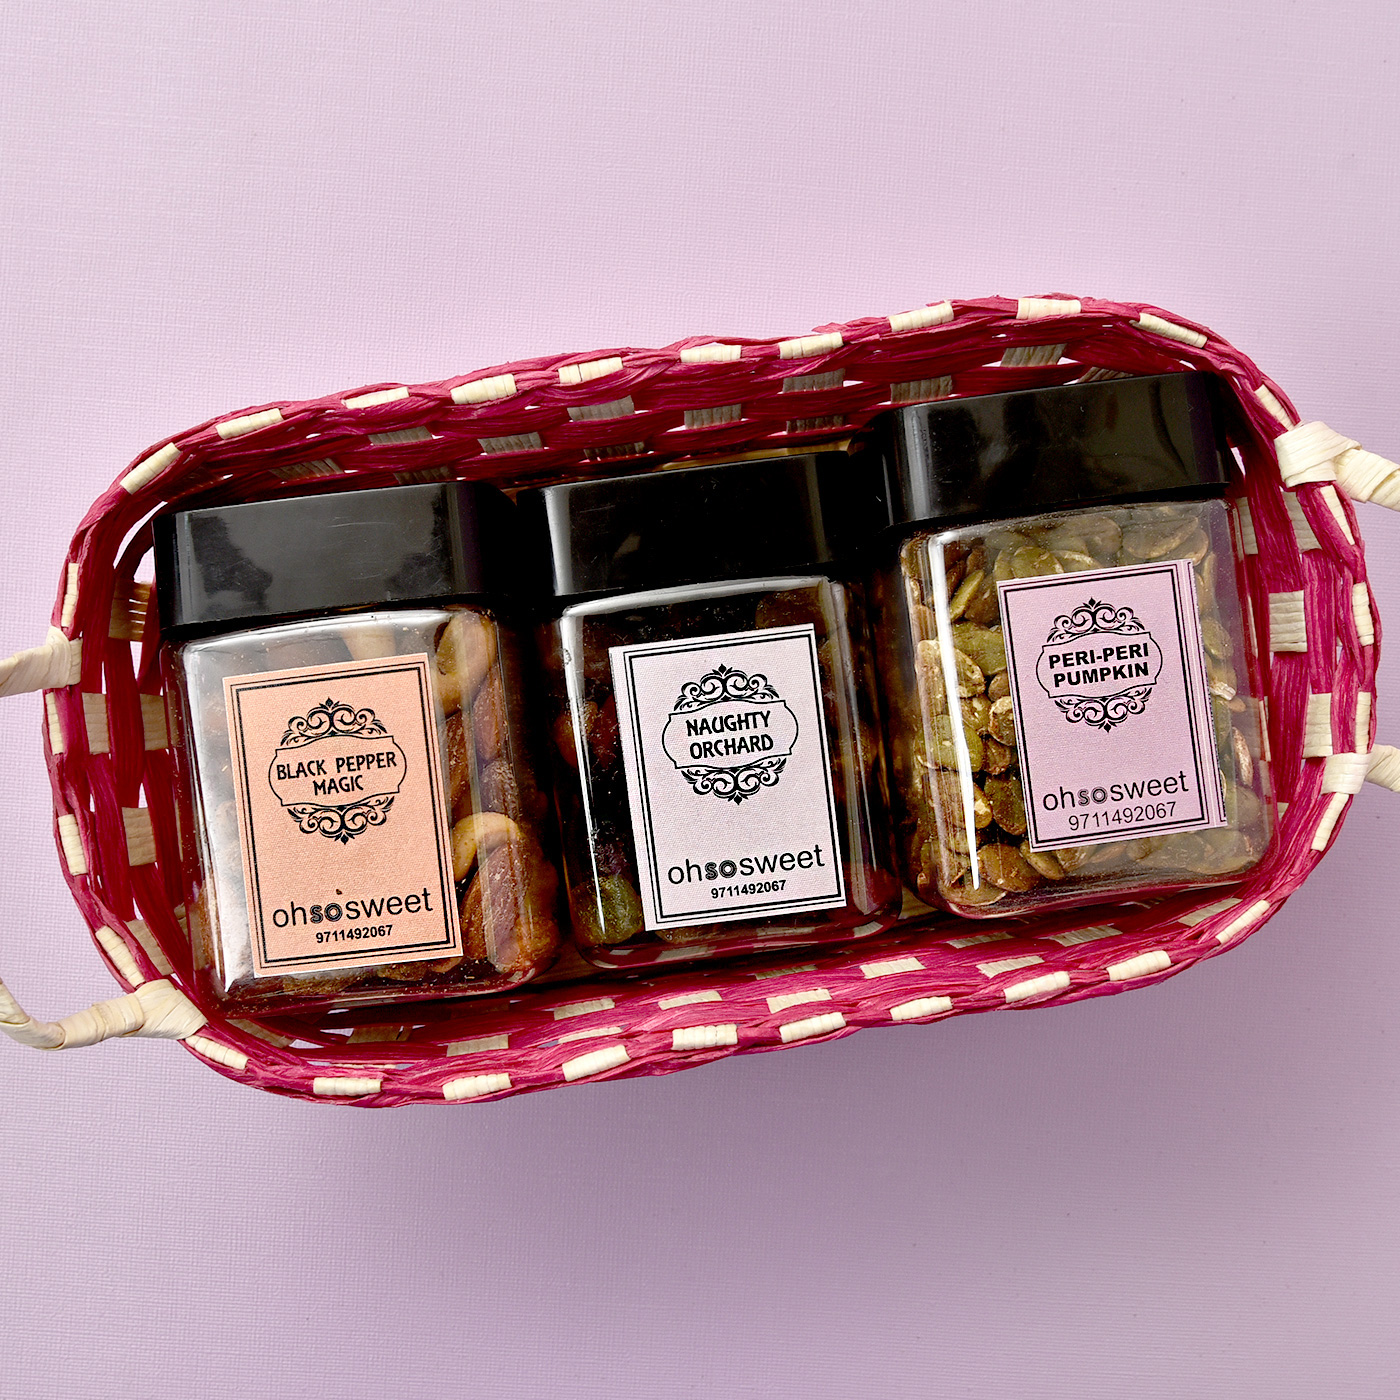 Delightful Flavored Dryfruits & Savouries Cans in Basket